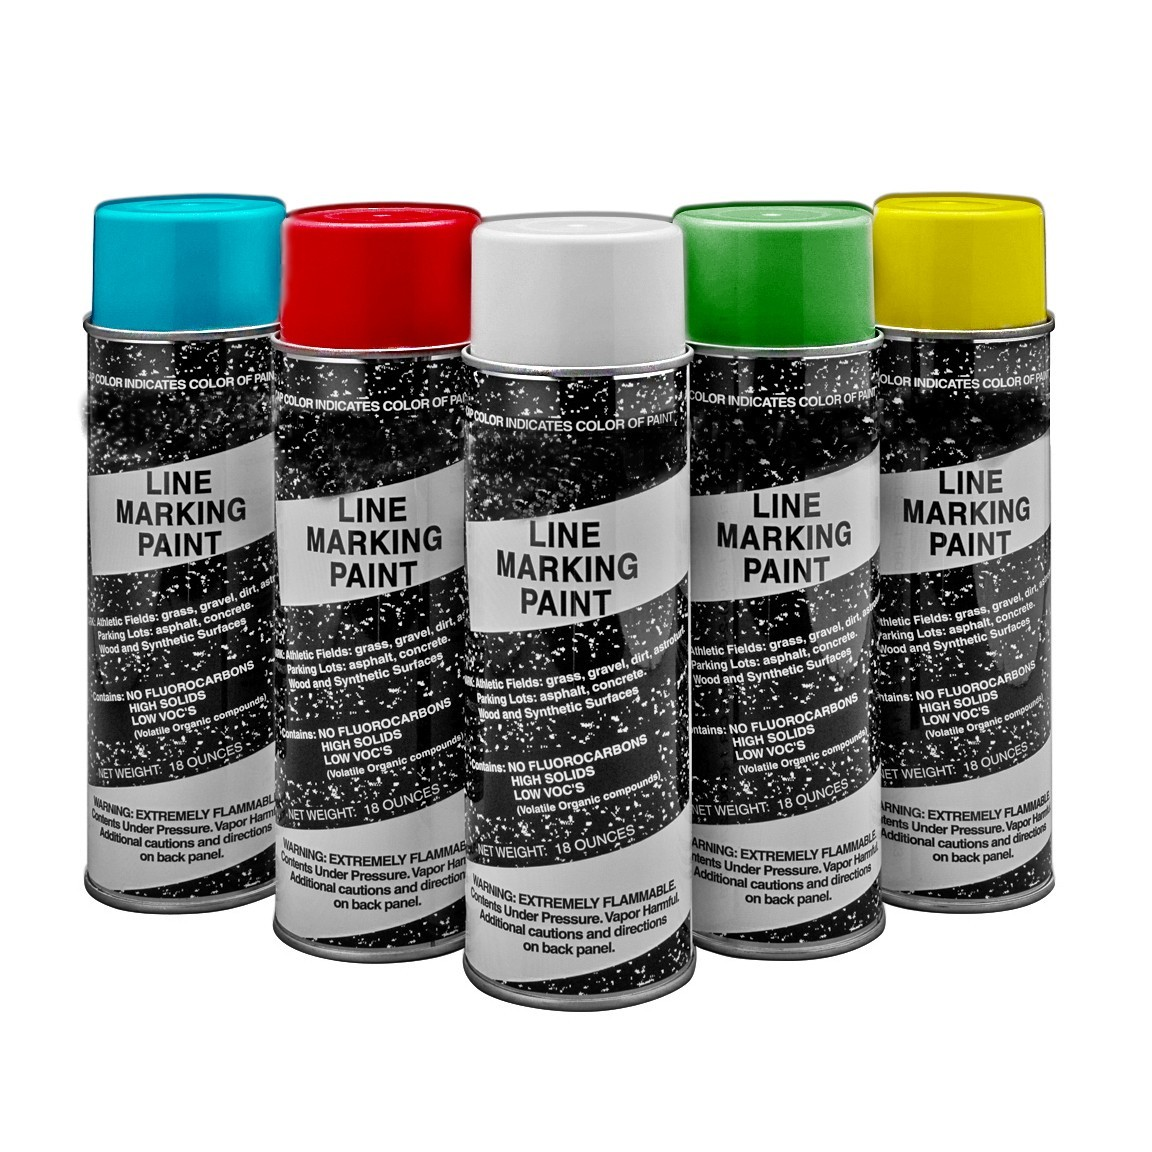 Striping, Field Marking Paint - Specify Color when Ordering - 18 Oz - 12/Case